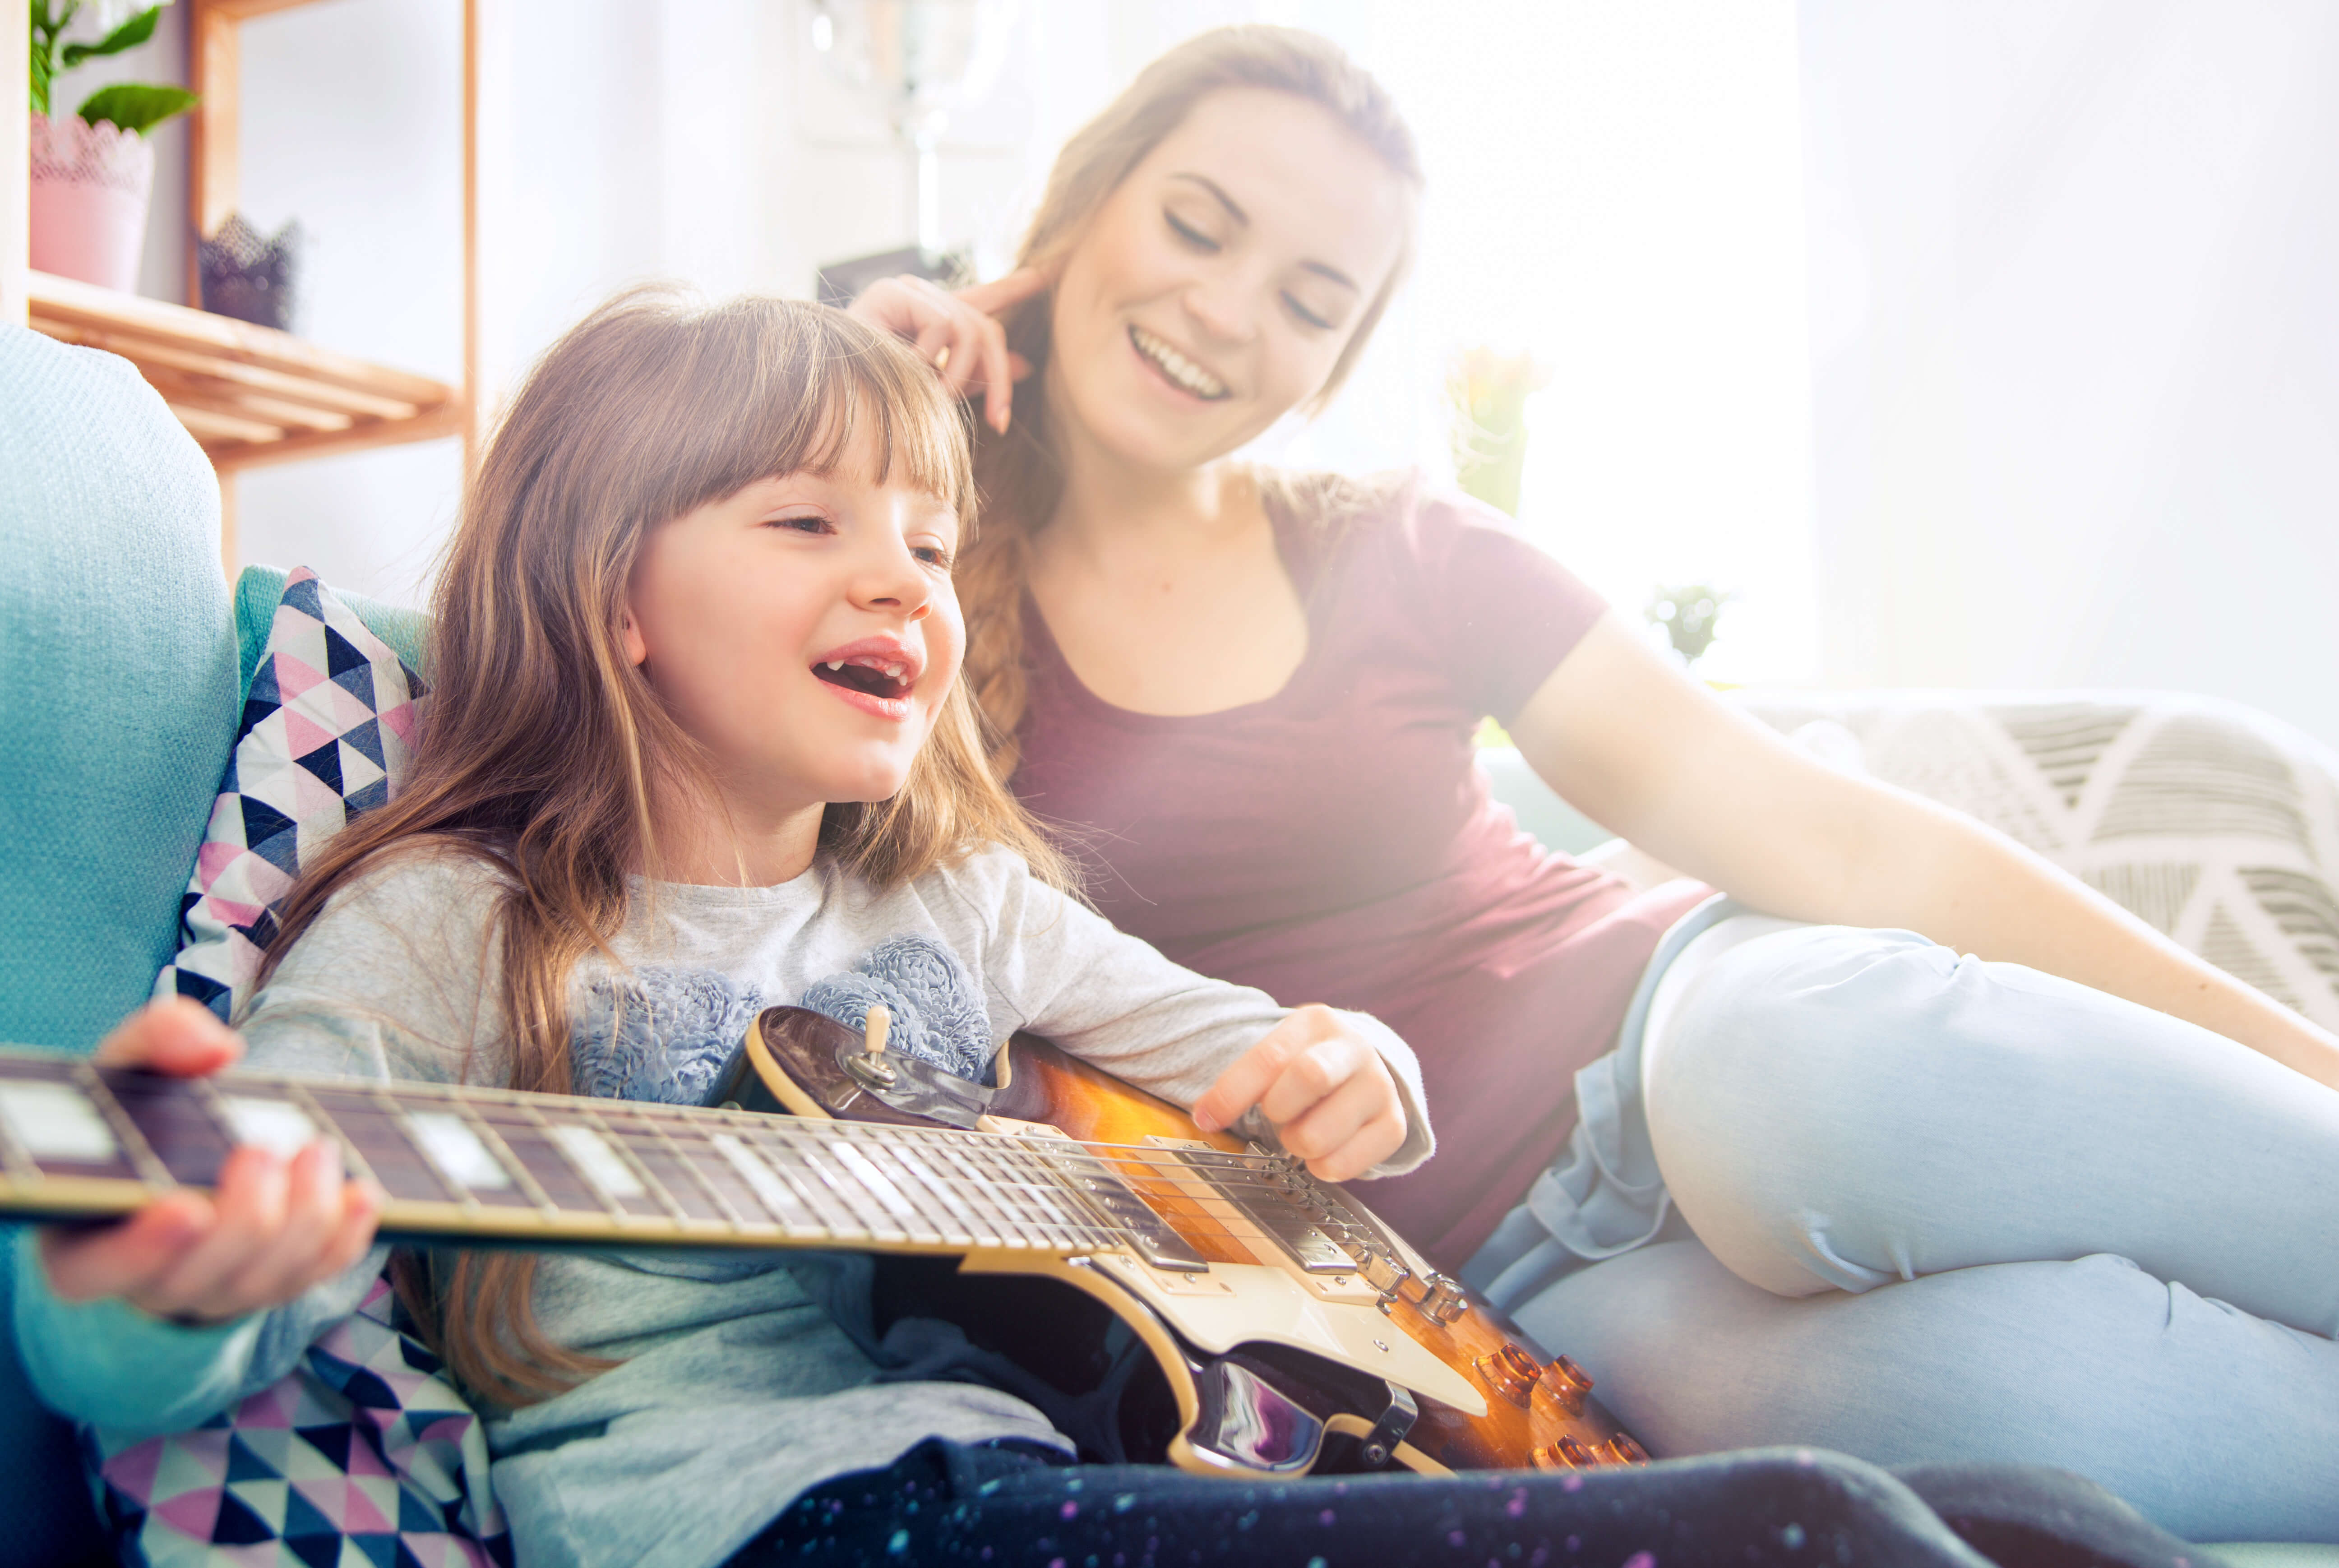 Mother and daughter at home playing guitar and singing